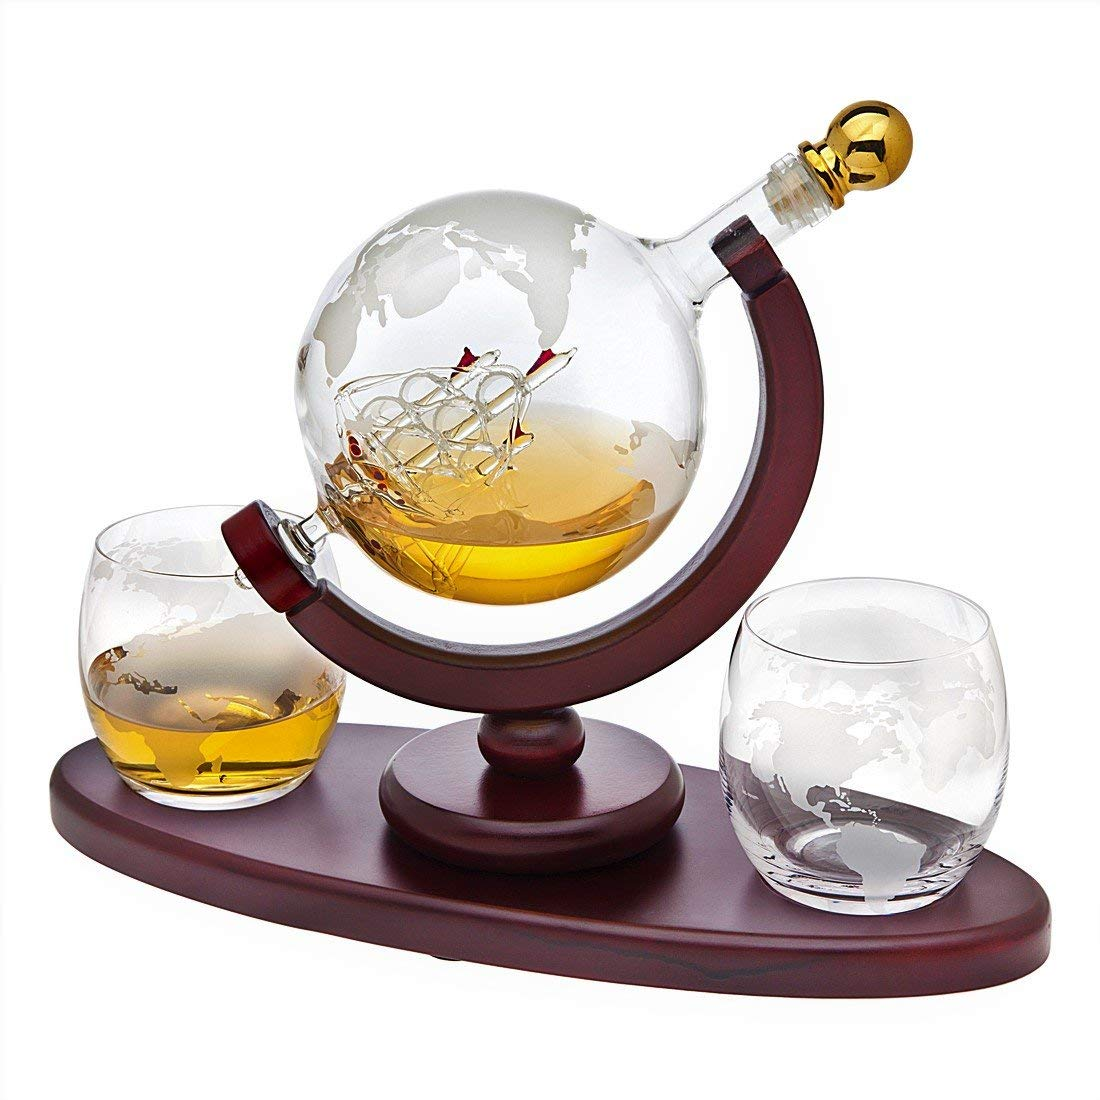 Normally $90, save $40 on this hand-crafted Godinger globe-themed whiskey decanter set (Photo via Amazon)